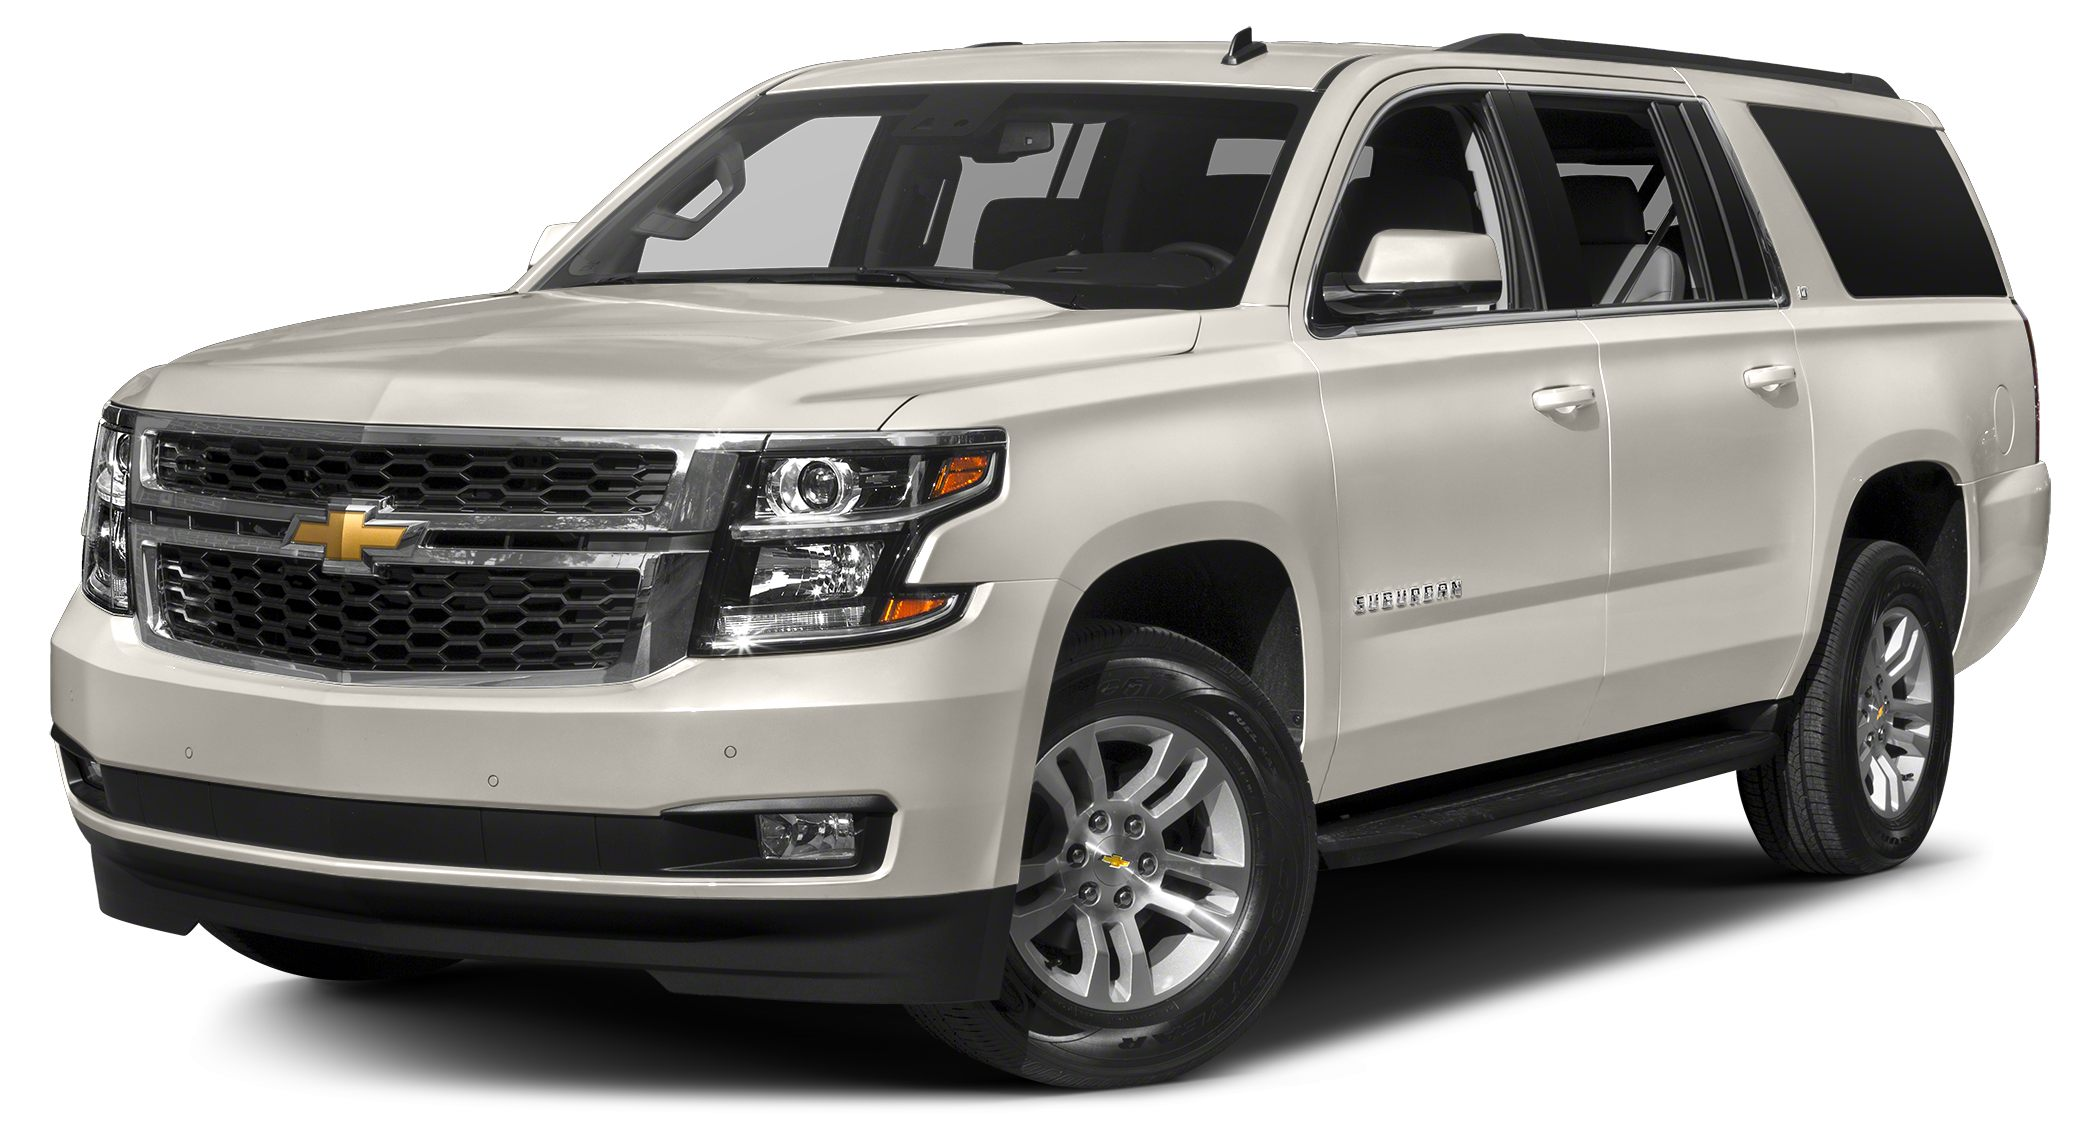 2015 Chevrolet Suburban 1500 LTZ Miles 0Color White Diamond Tri-Coat Stock 154380 VIN 1GNSCK